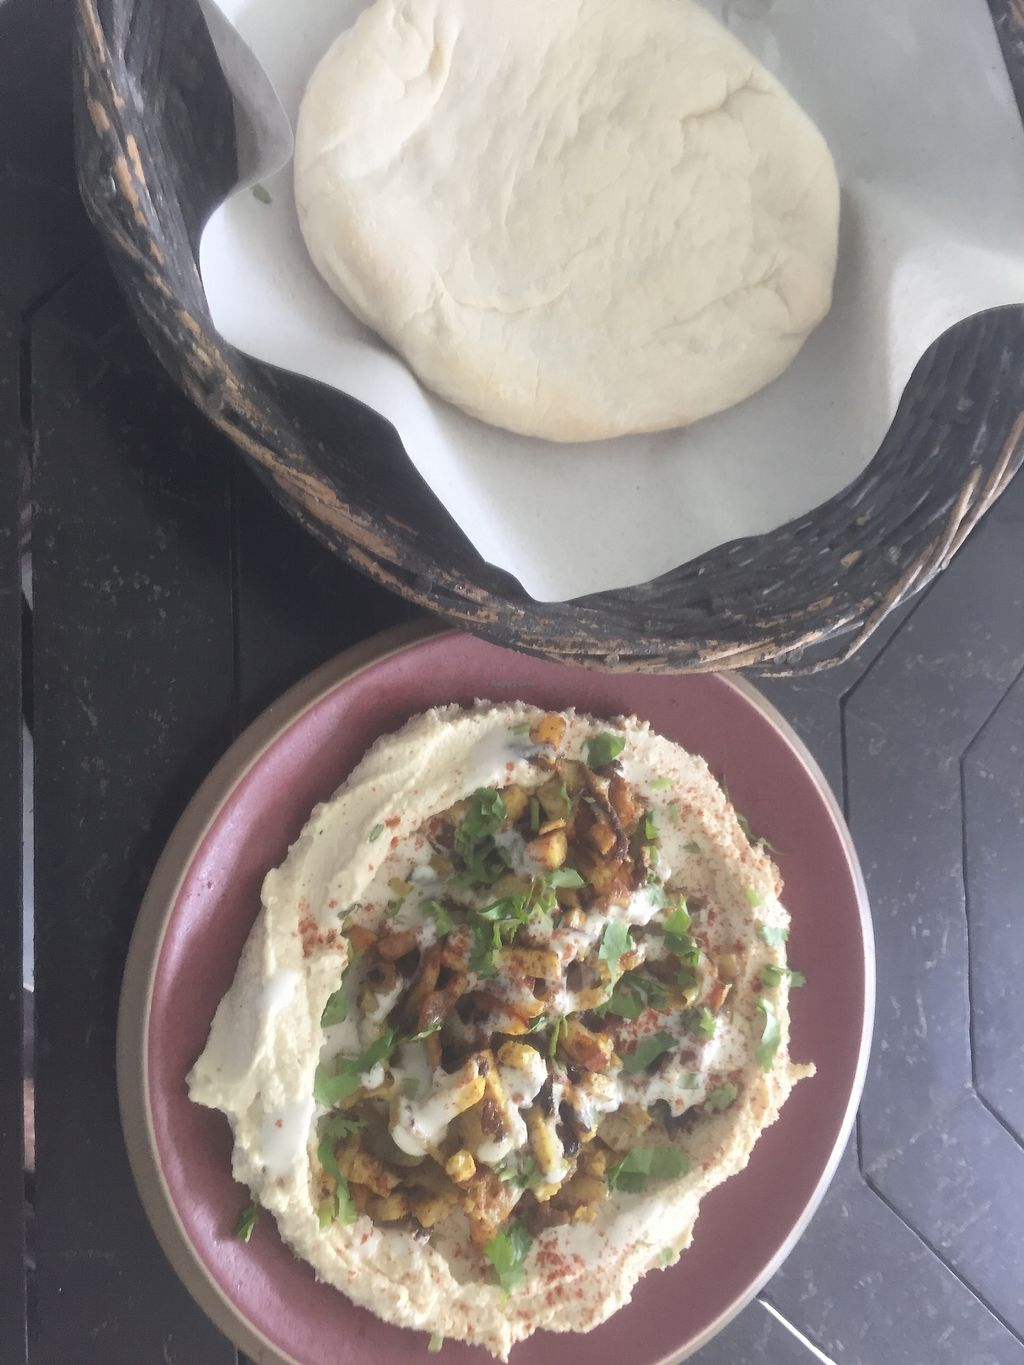 """Photo of Green Gallery  by <a href=""""/members/profile/Pons"""">Pons</a> <br/>Hummus + shawarma <br/> February 25, 2018  - <a href='/contact/abuse/image/44811/363545'>Report</a>"""